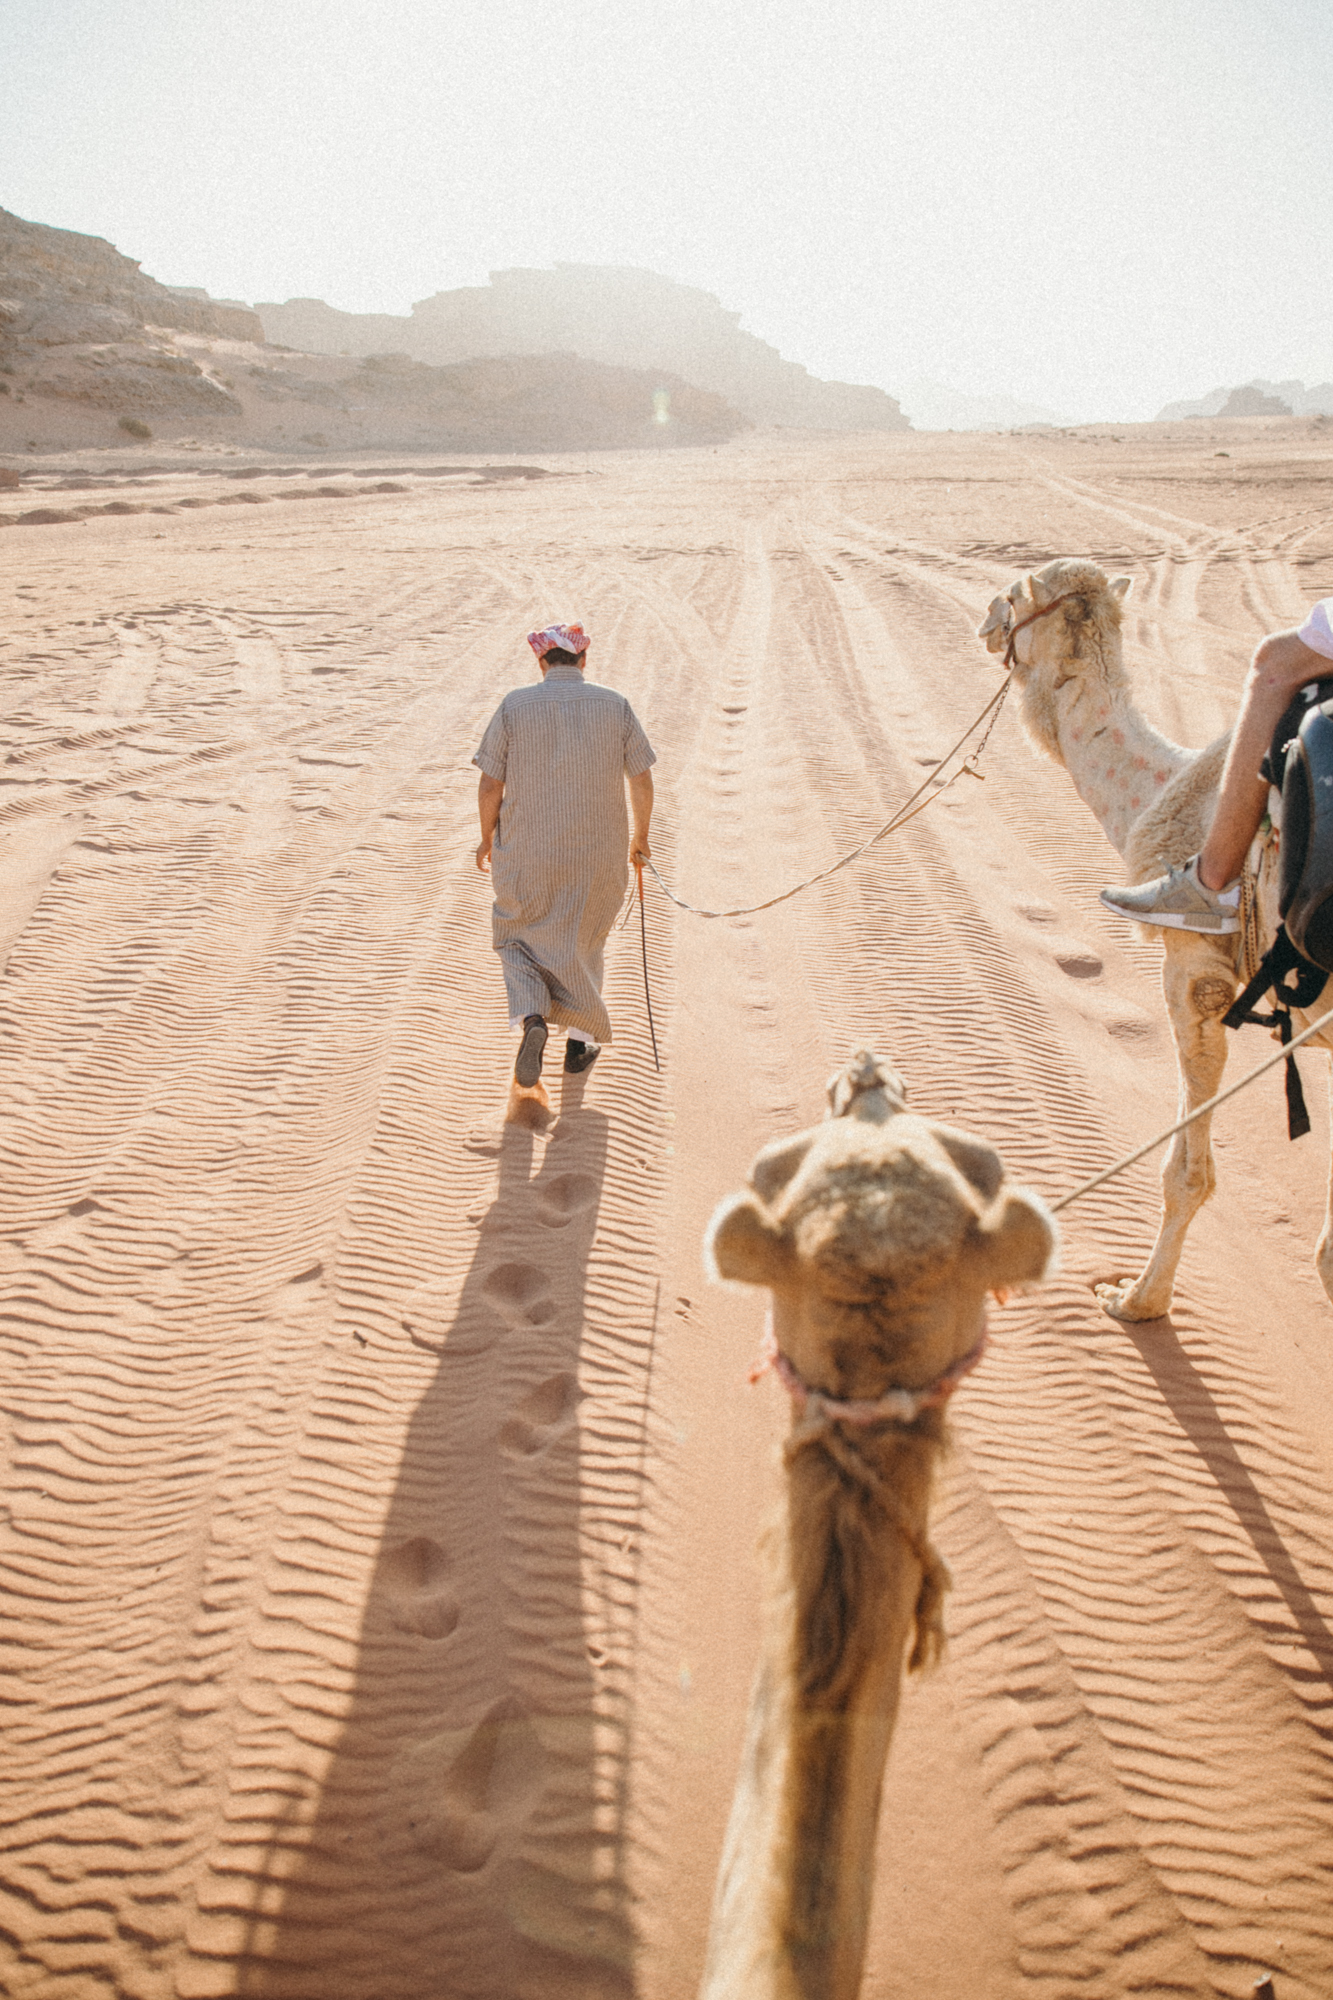 Later that evening we went on a camel ride!!